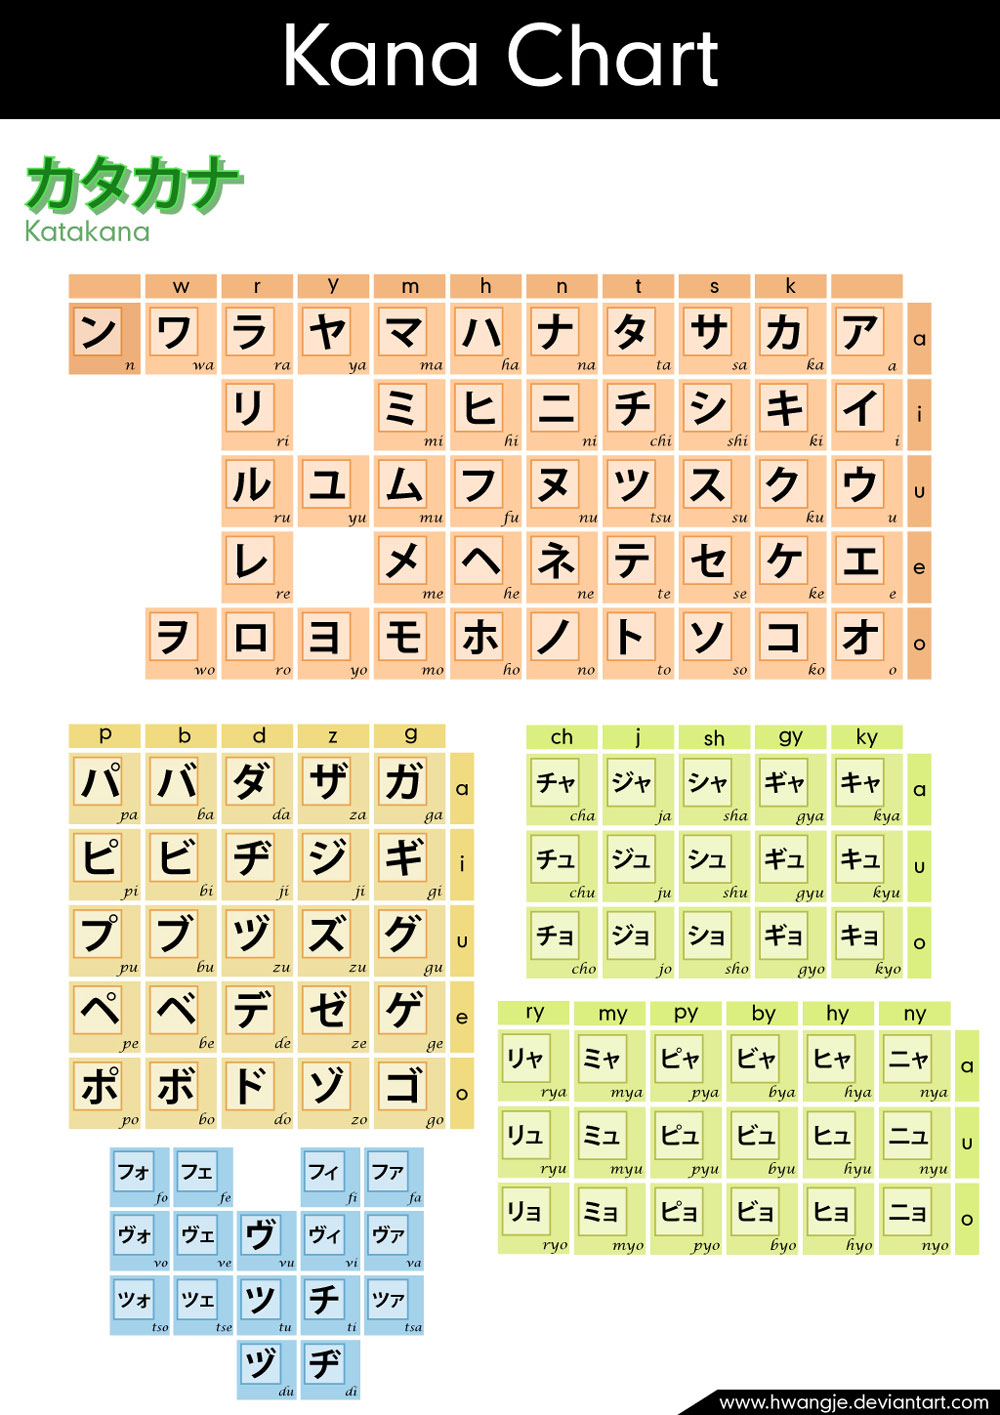 basic katakana chart with color coding